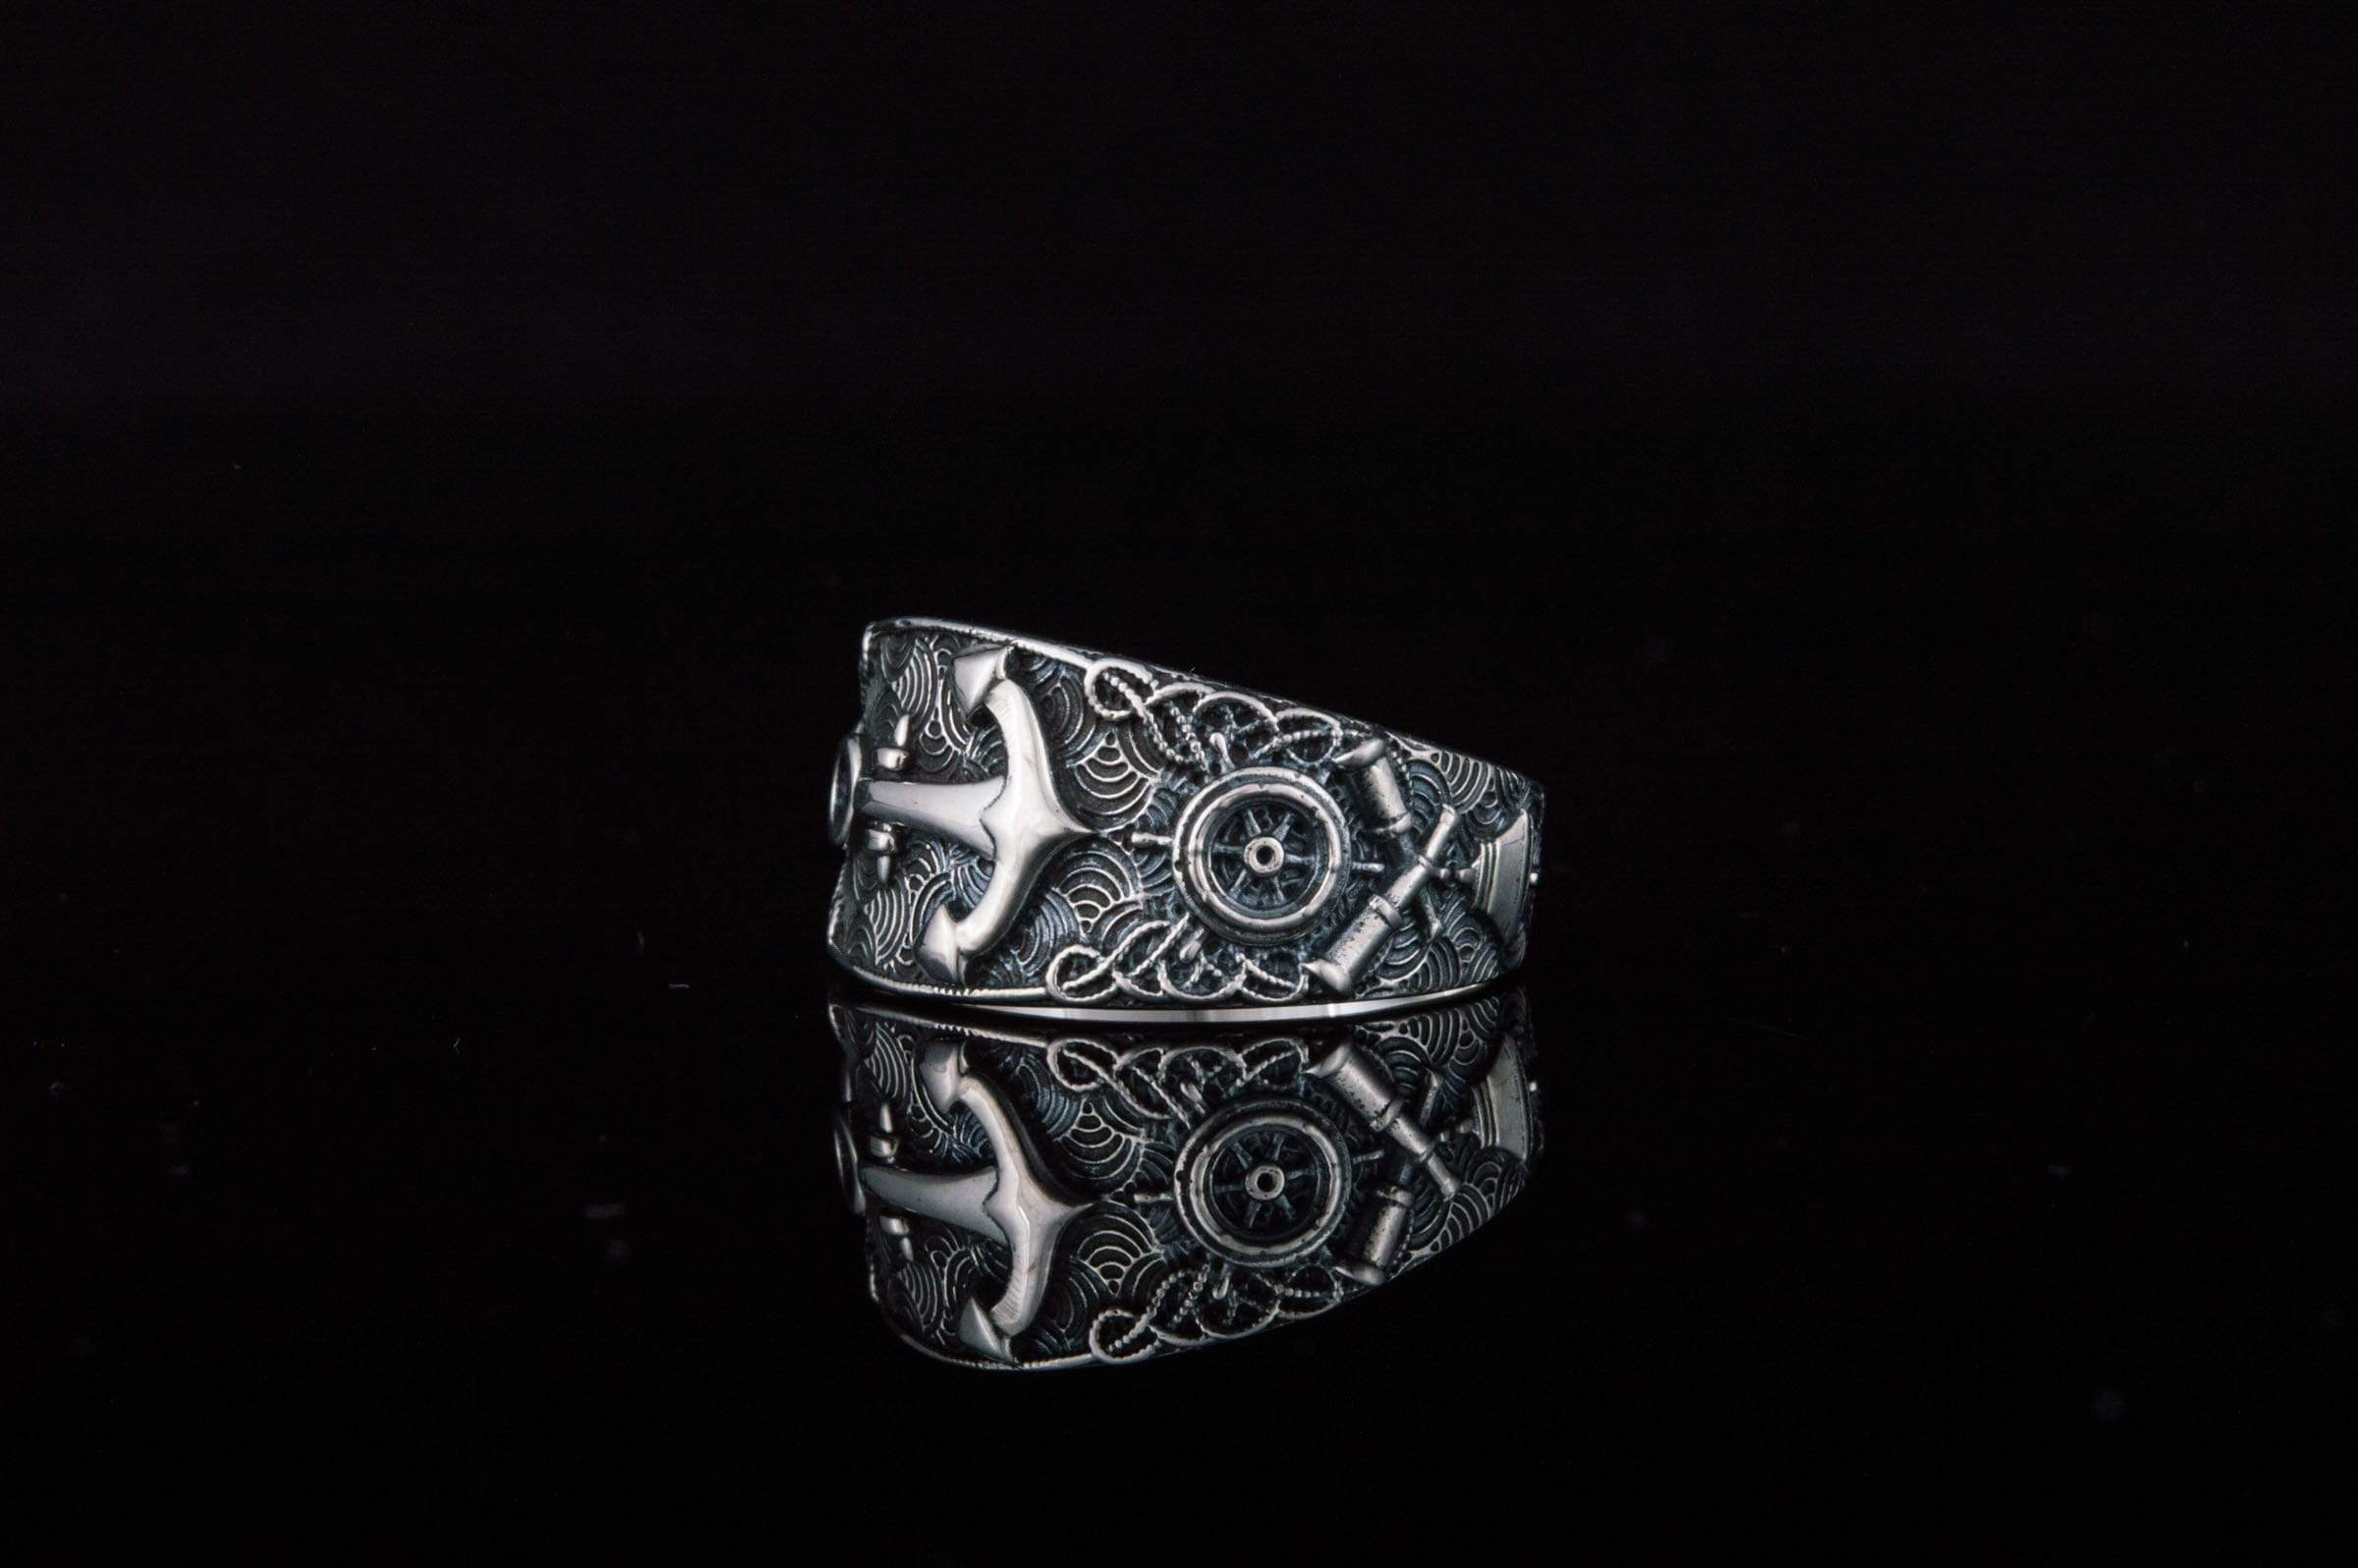 Ancient Smithy VW jewelry Unique Ring with Anchor Symbol Sterling Silver Handcrafted Jewelry